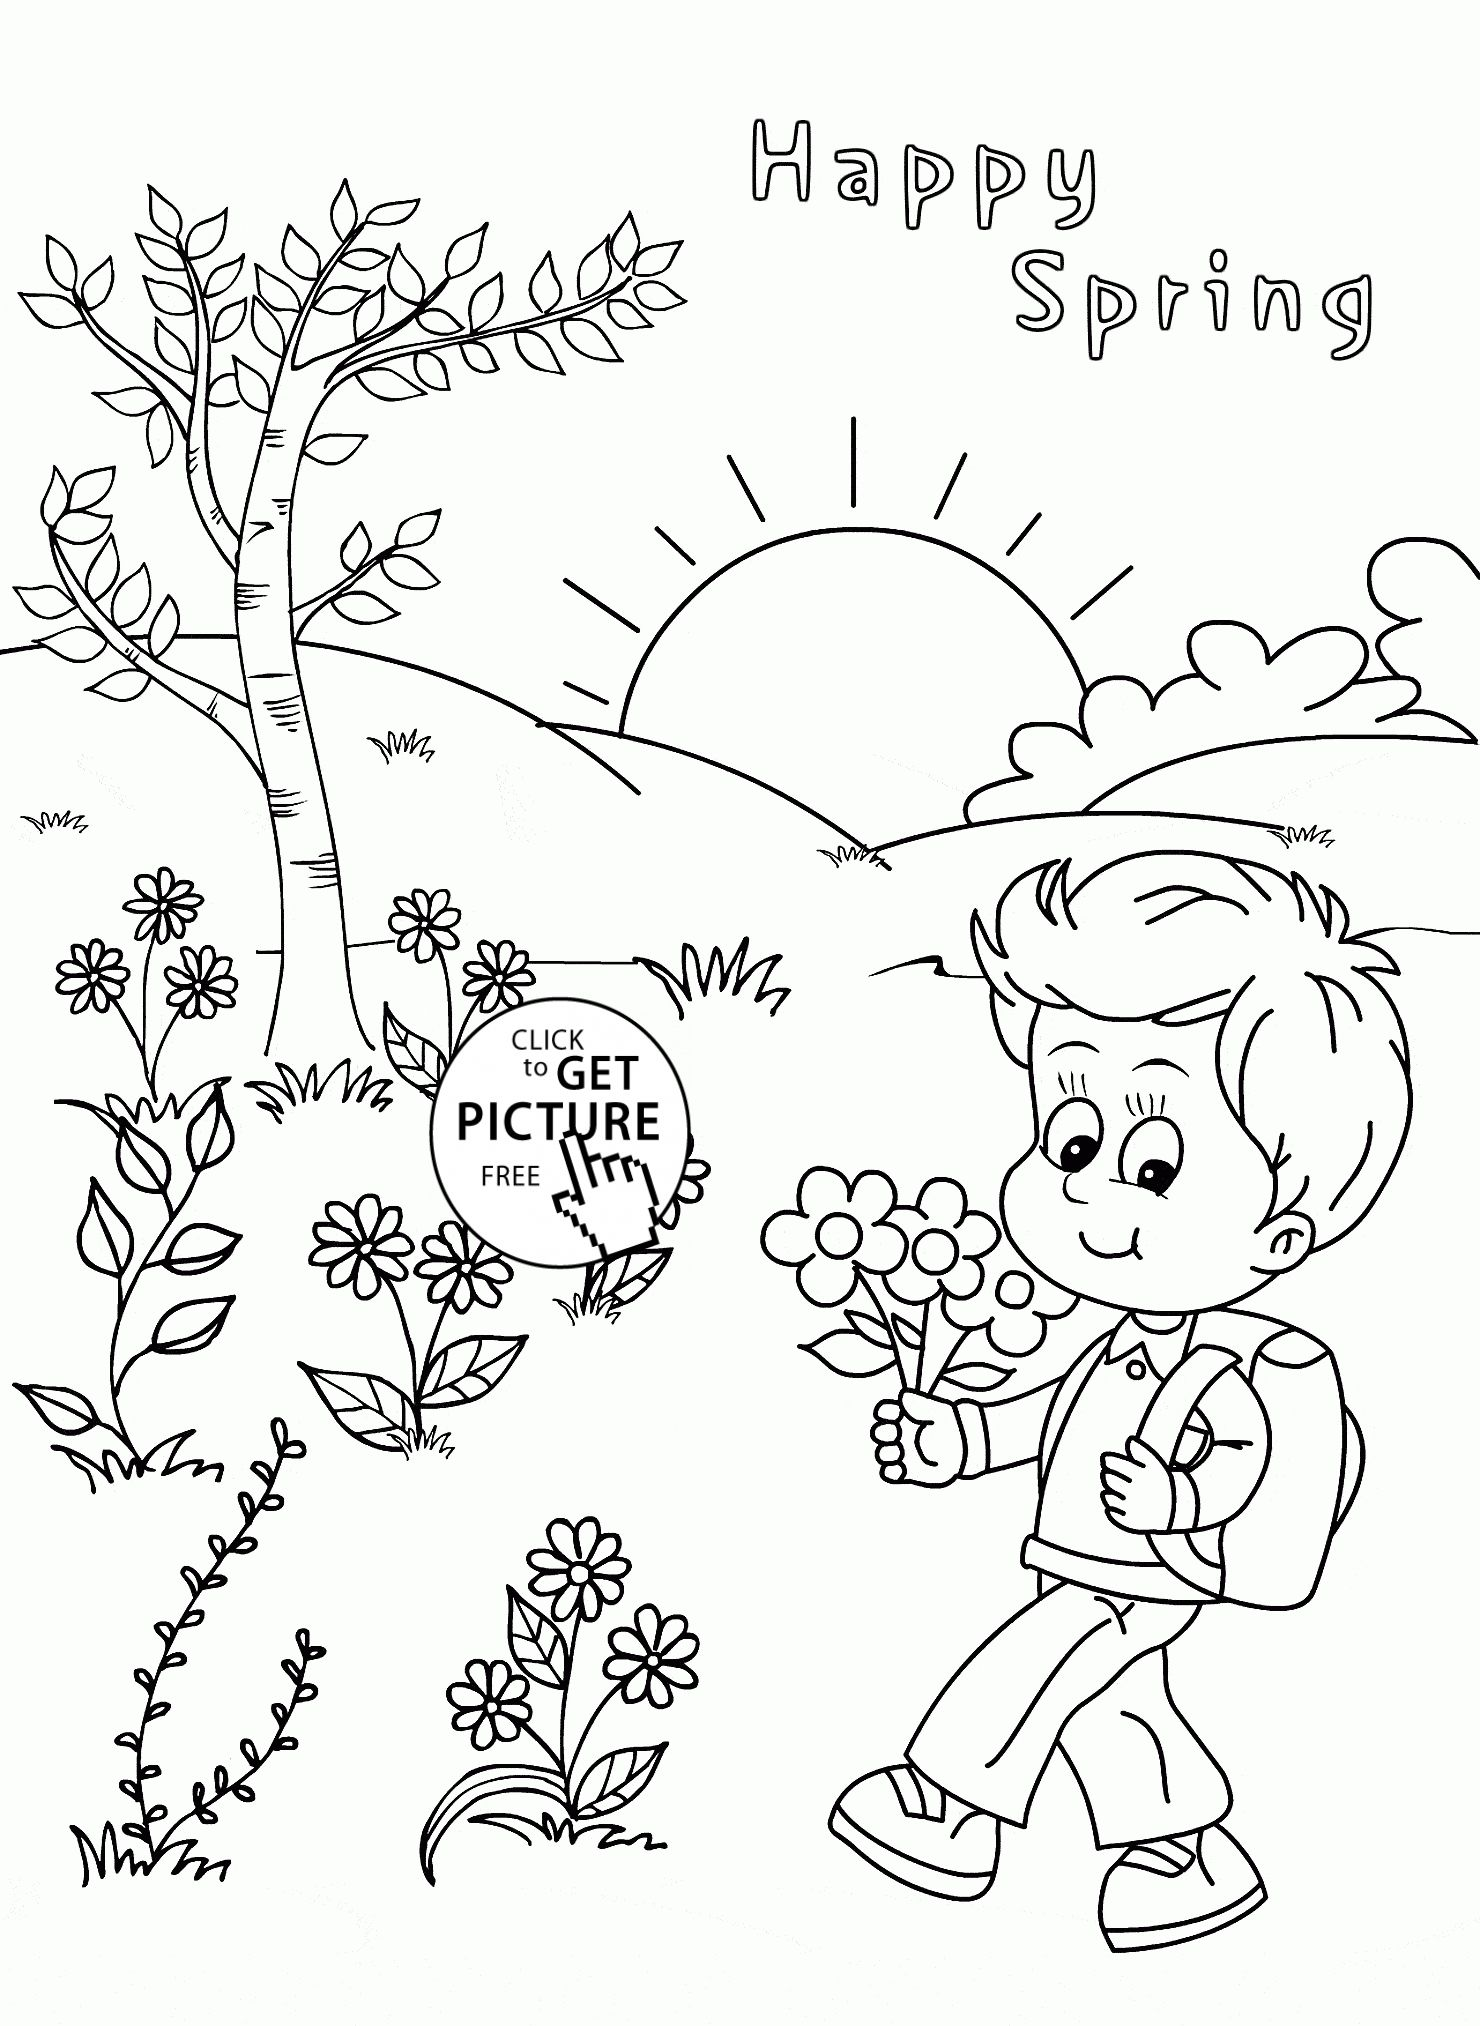 Free Coloring Pages Of Money On Tree Printable Spring Coloring Pages Coloring Pages For Kids Coloring Pages For Boys